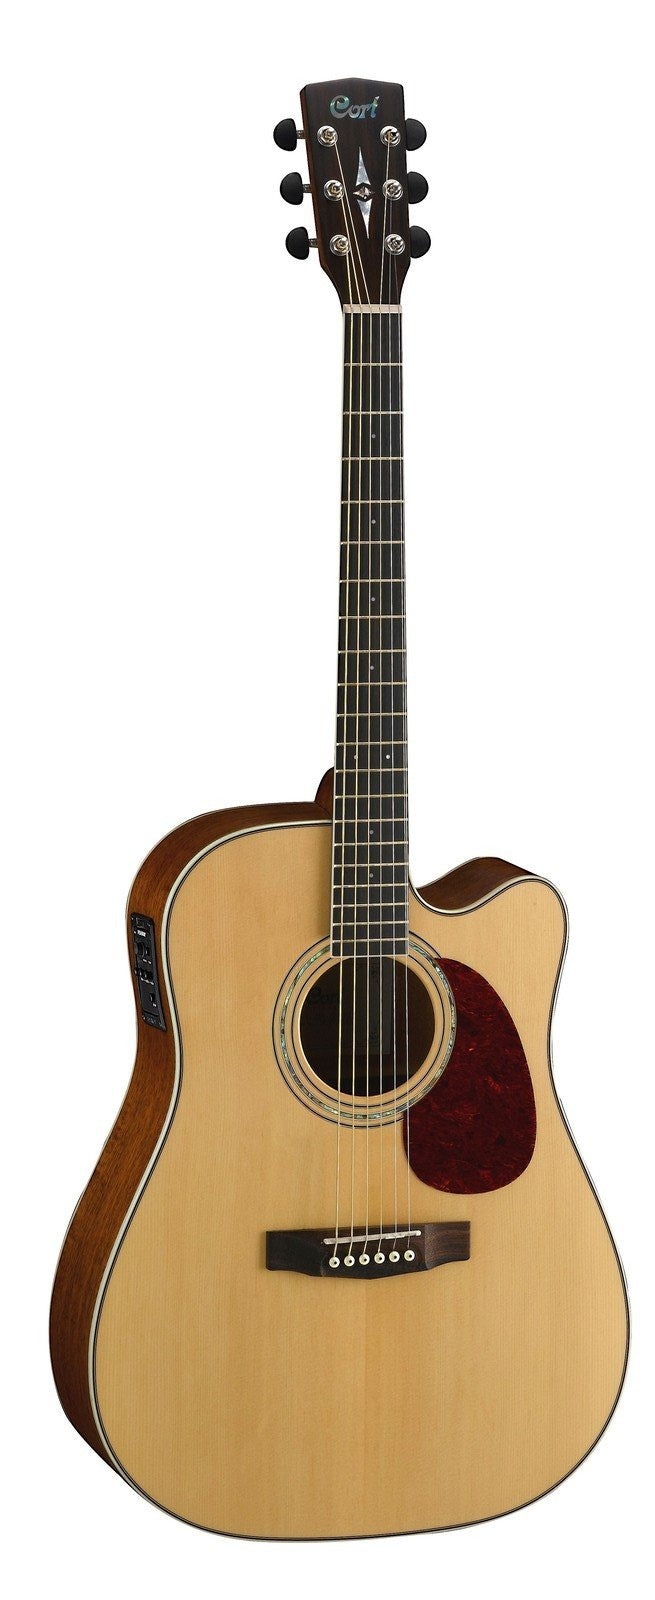 Cort MR710 F NS Acoustic Guitar - Fishman Pickup